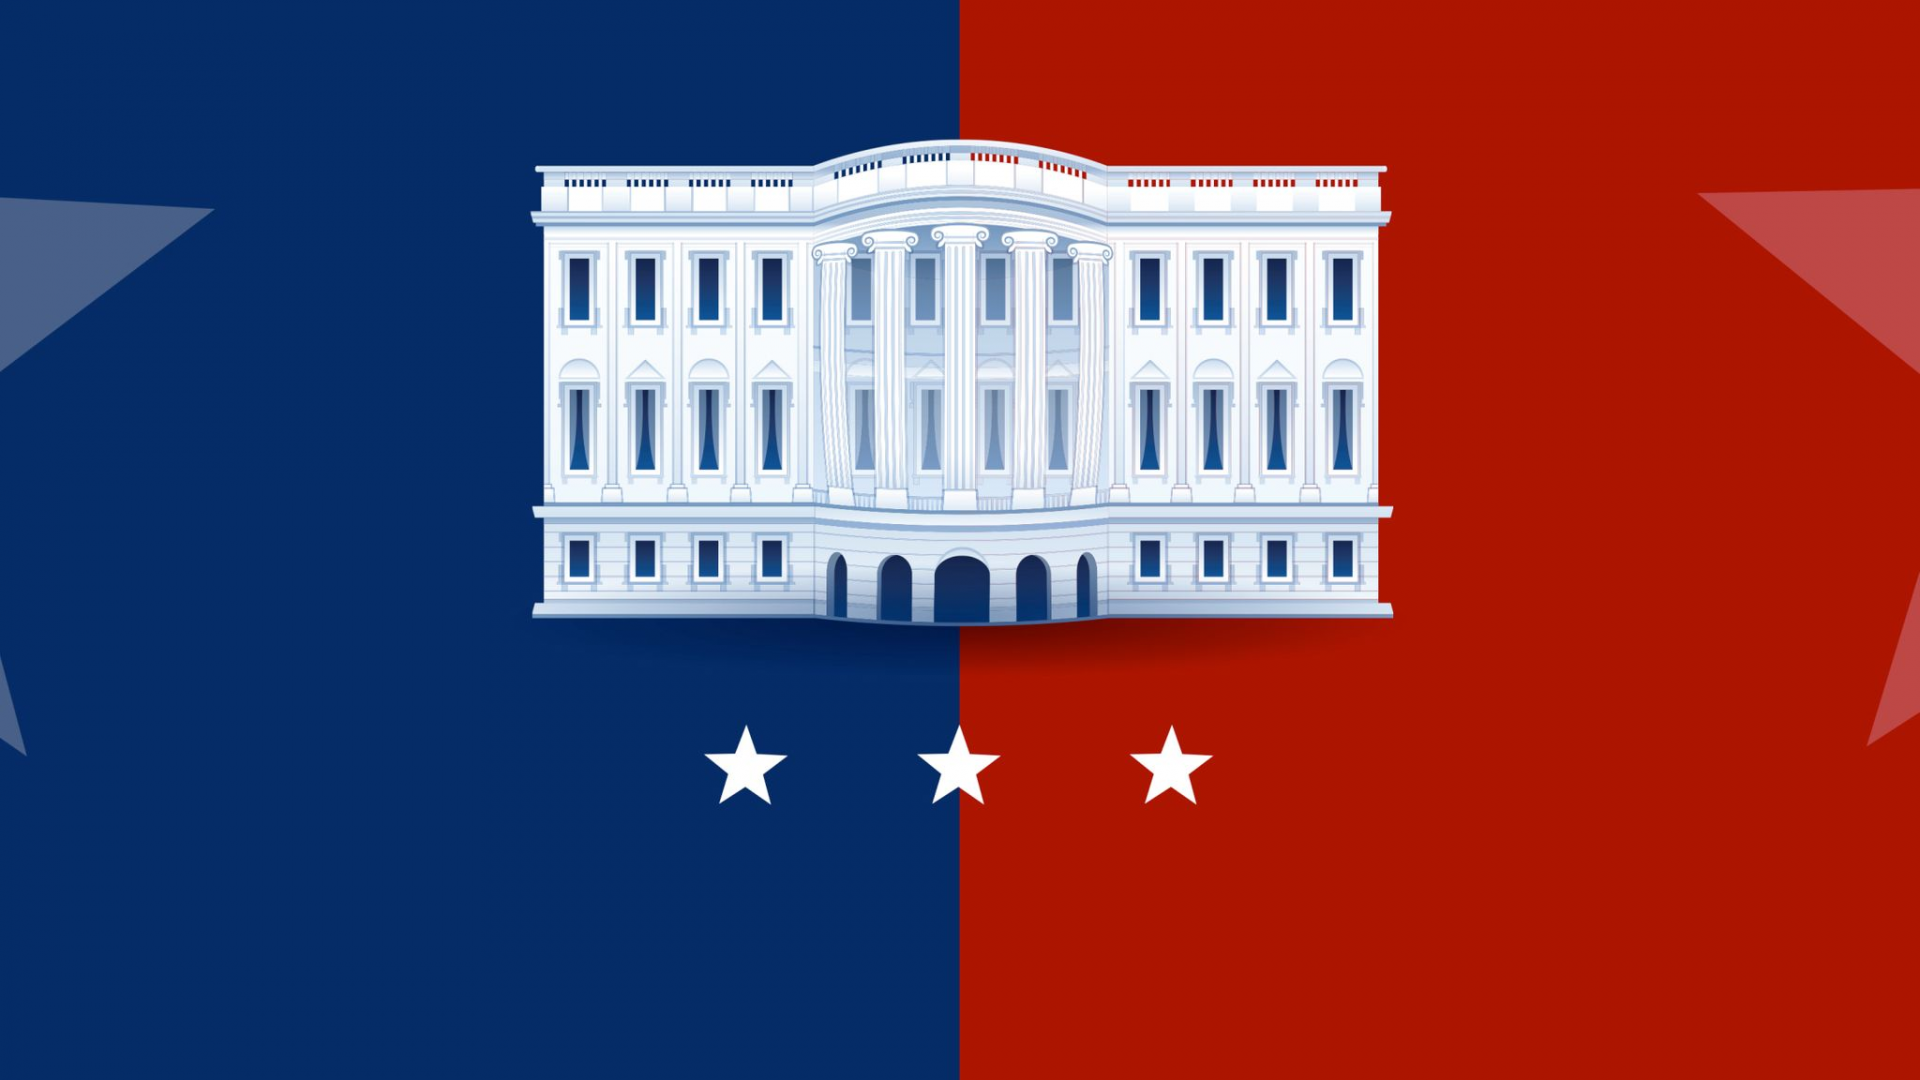 2020 United States presidential election: Candidates, Campaign, Votes, Ballot